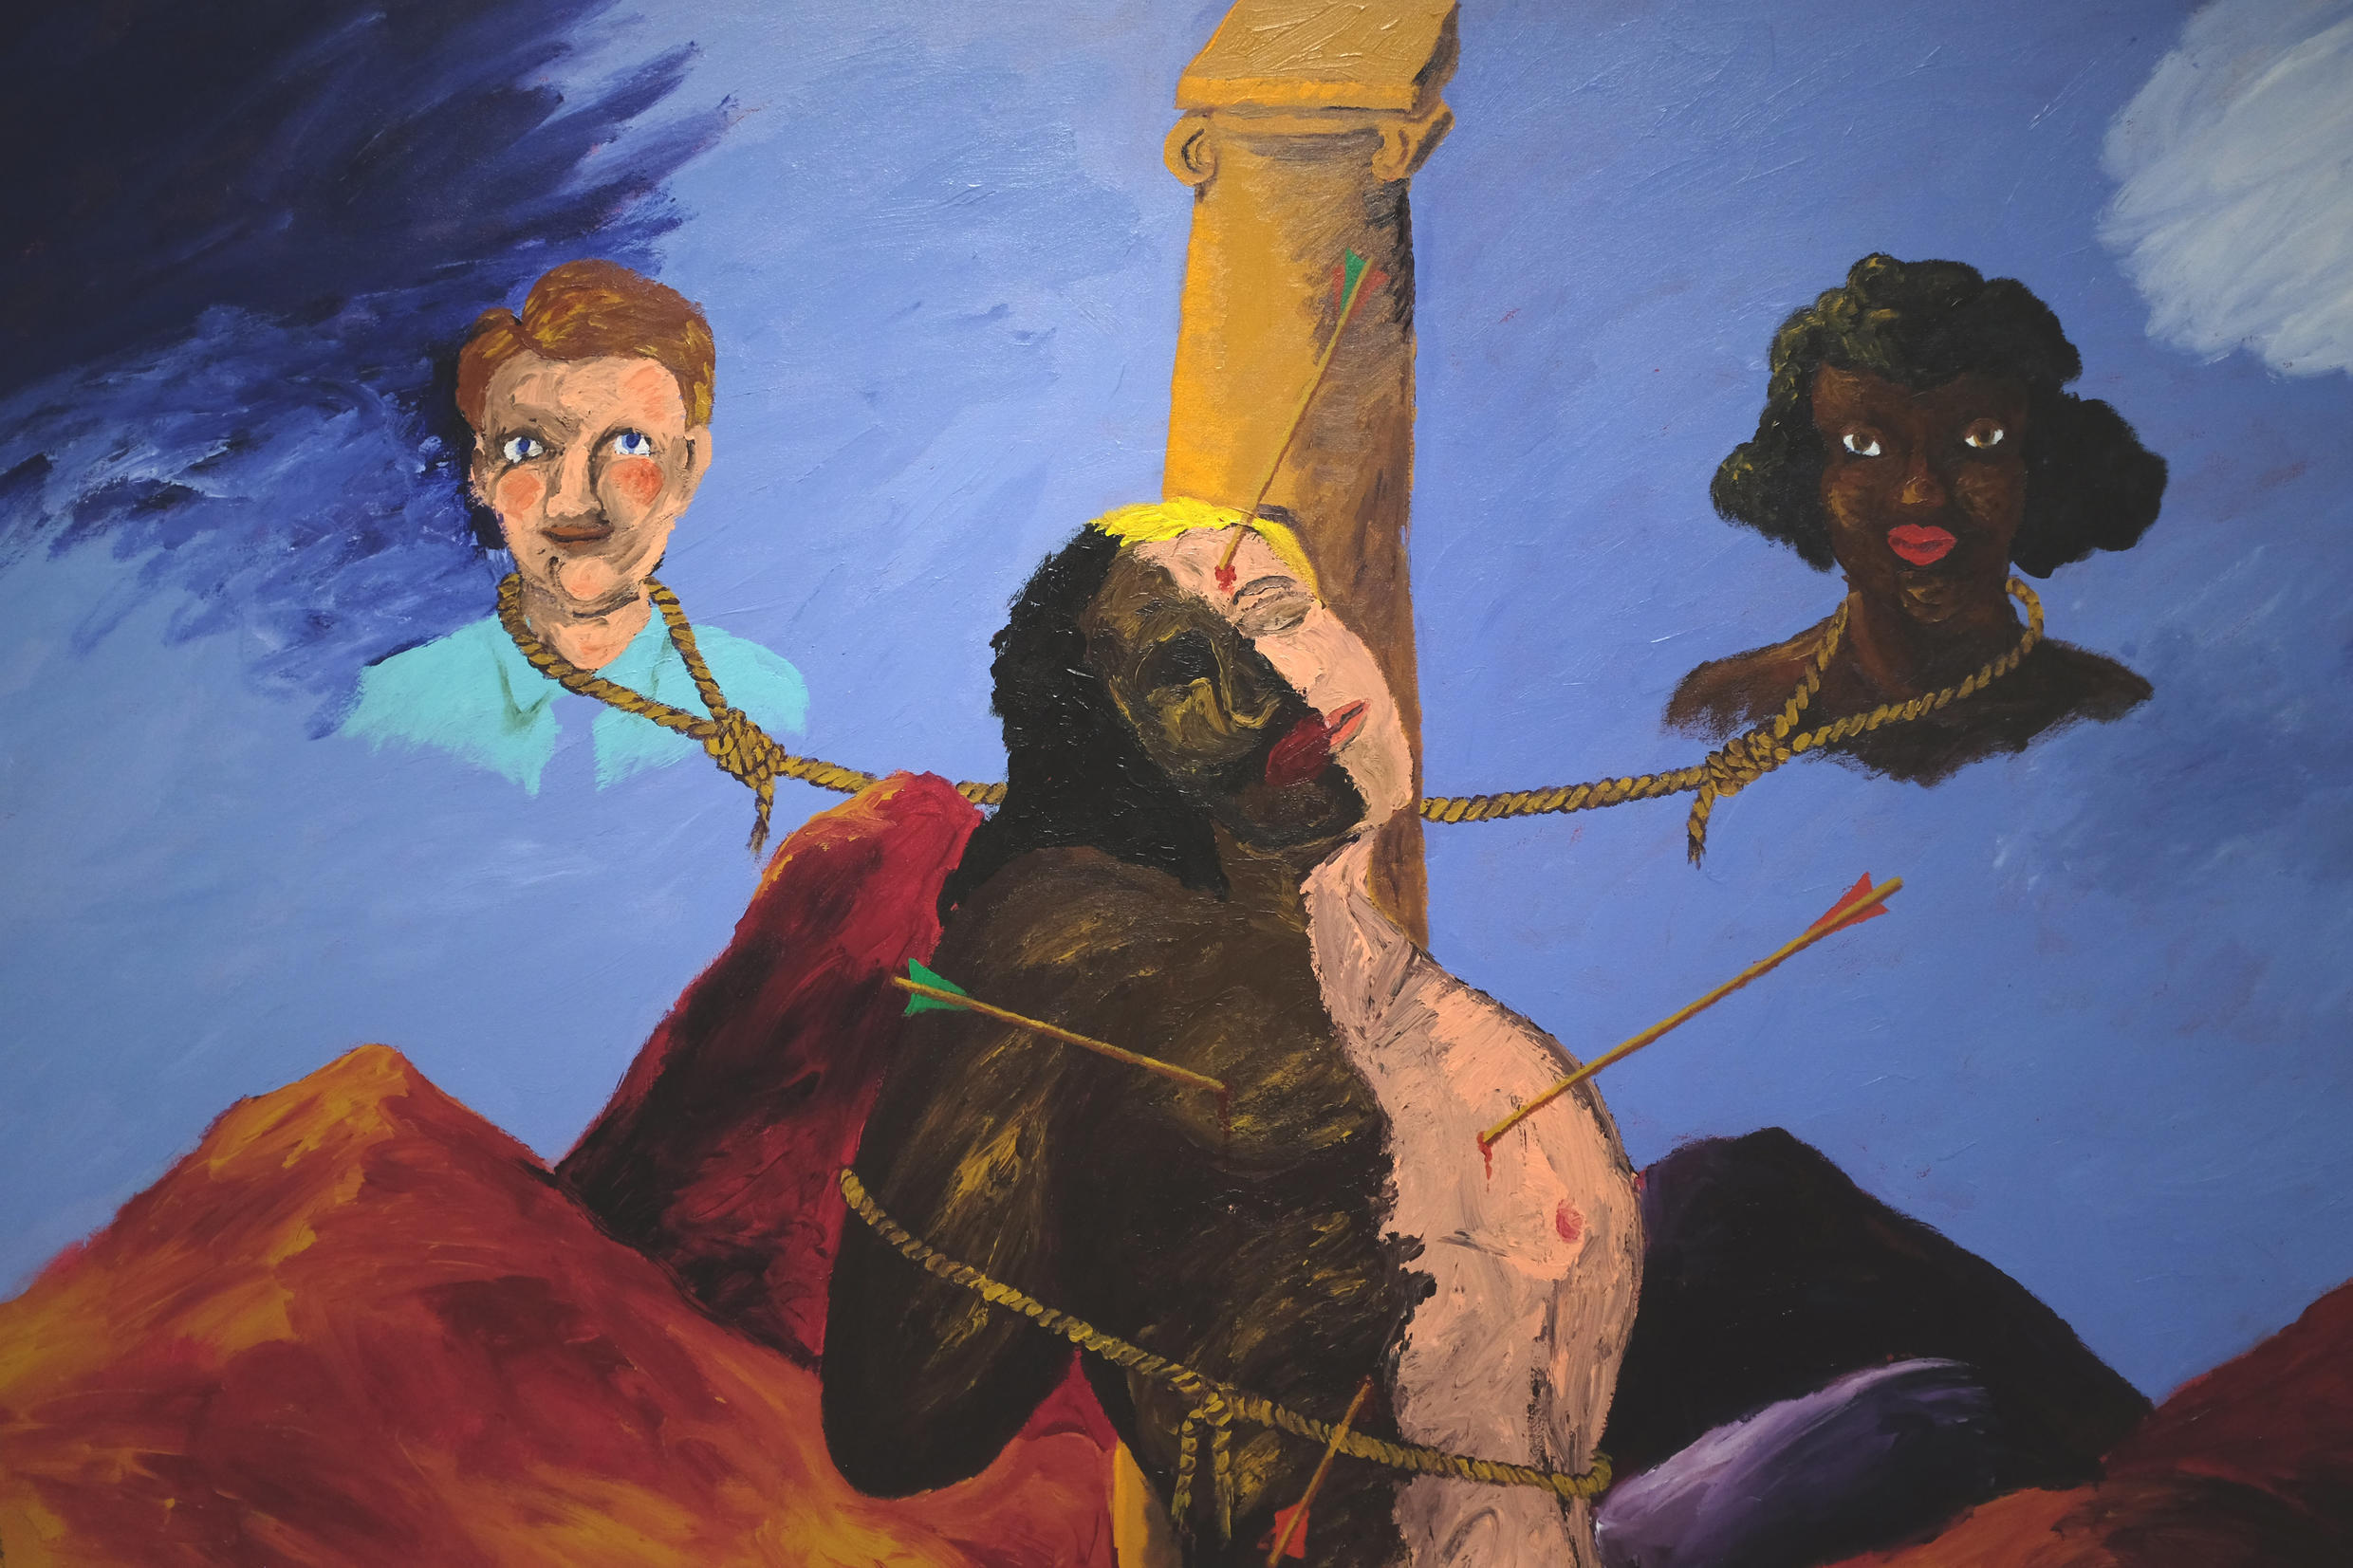 « Knowledge of the Past is the Key to the Future (St. Sebastian) » (detail), 1986. Oeuvre de Robert H. Colescott (1925-2009), exposée dans « The Color Line » au musée du quai Branly.